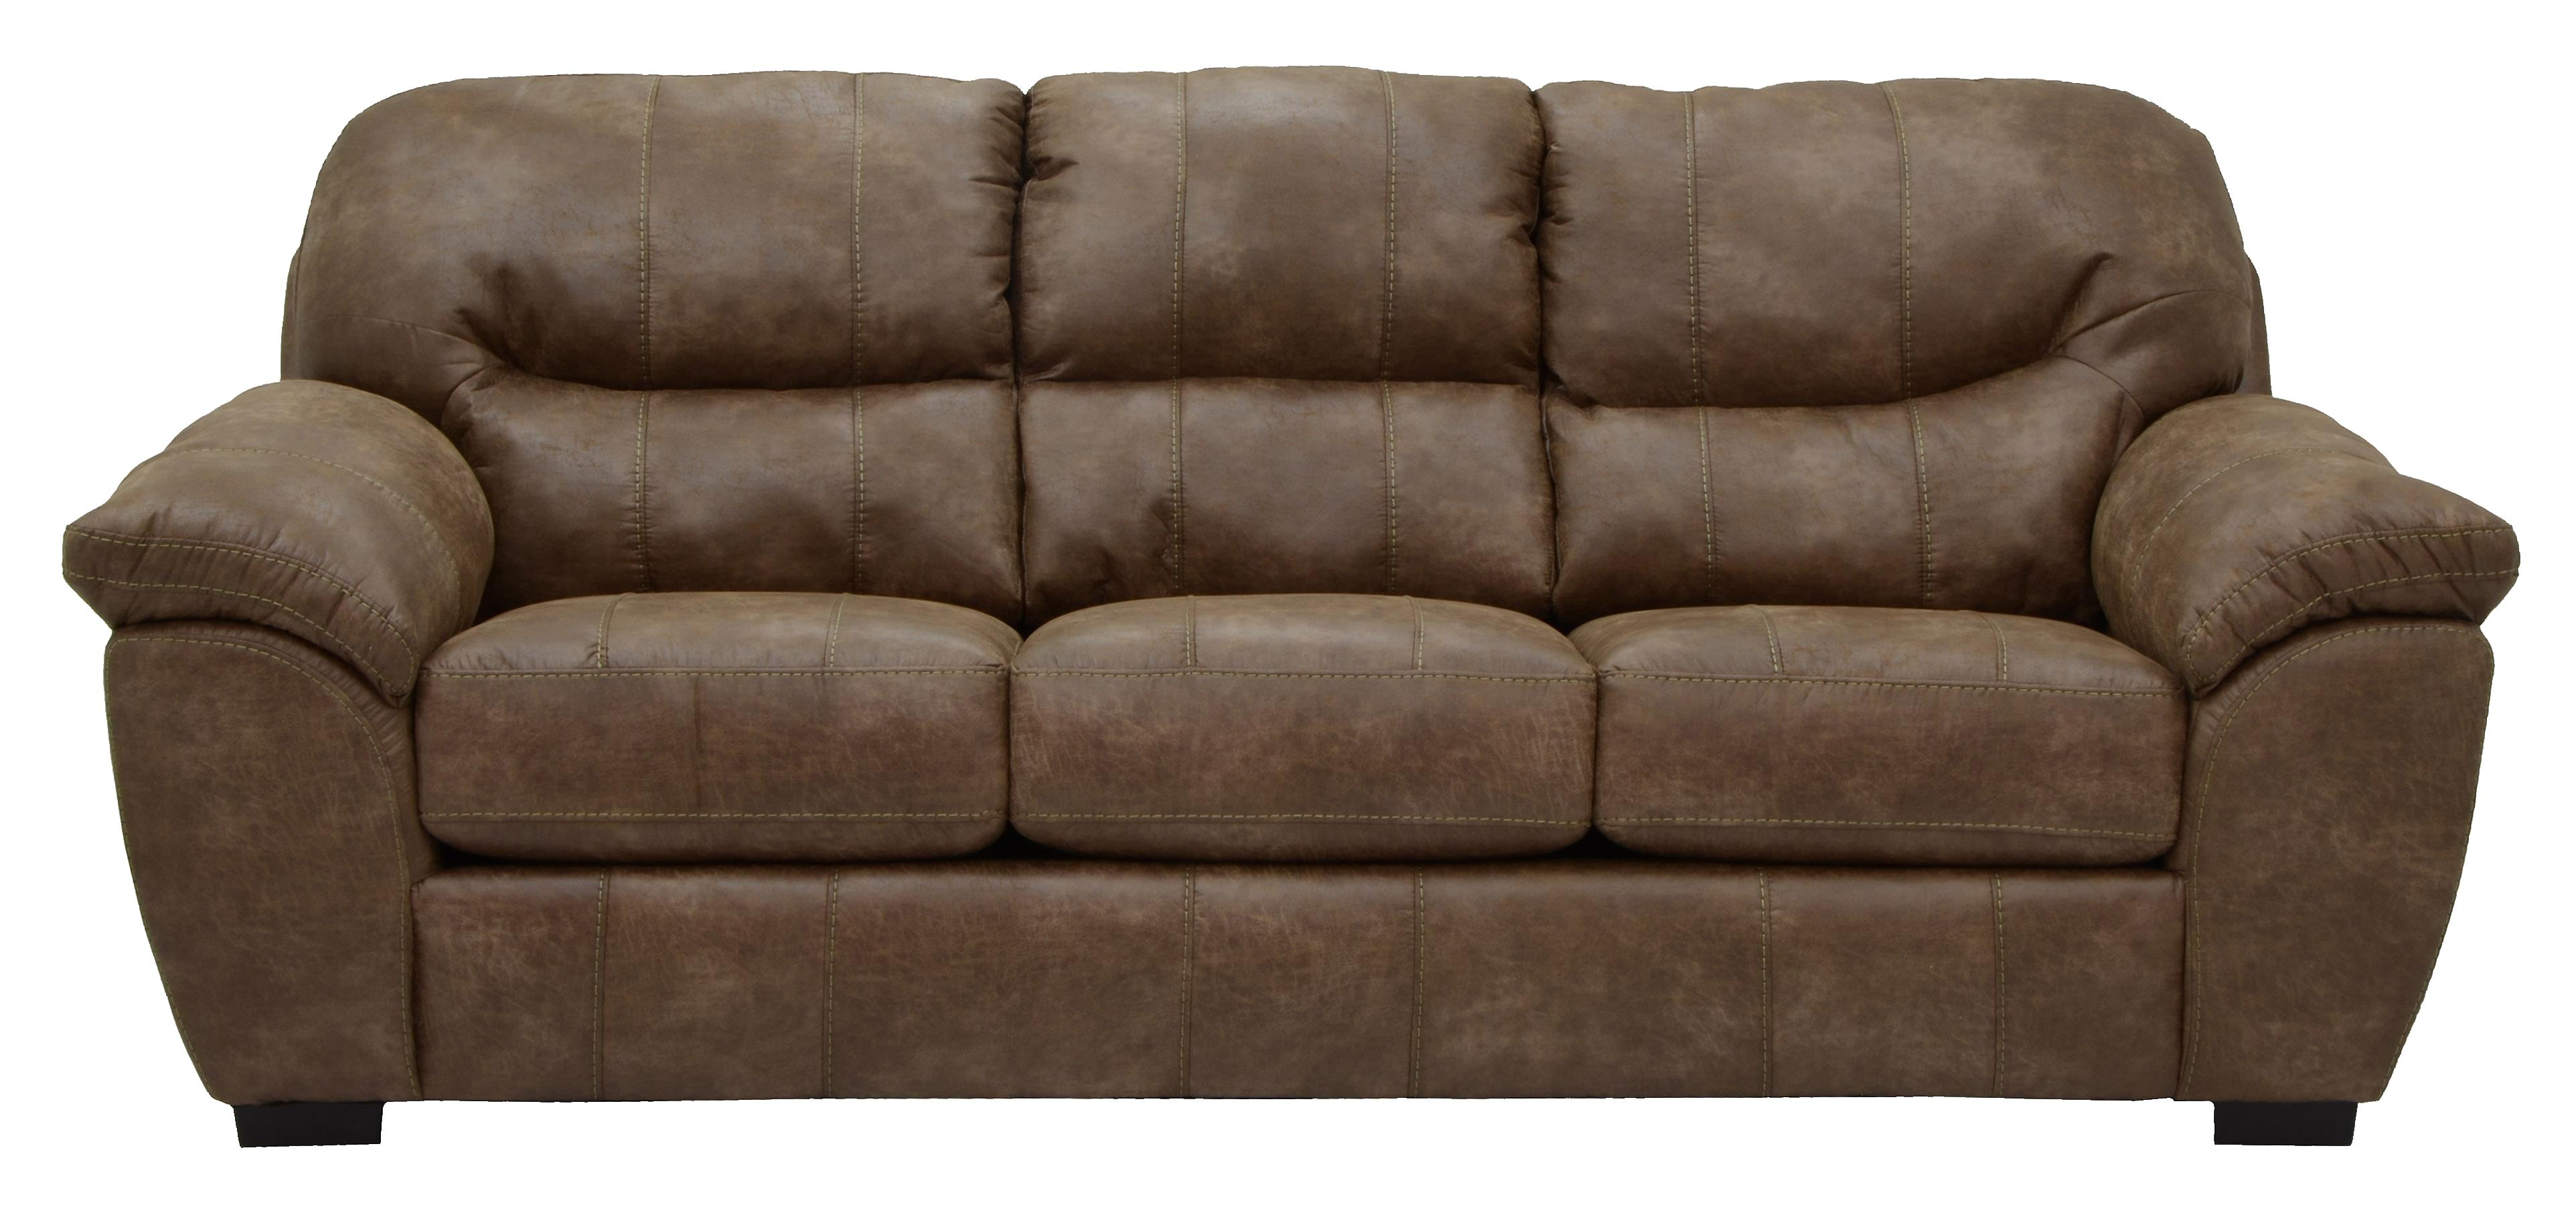 Jackson Furniture Grant Sleeper Sofa - Item Number: 4453-04-Silt